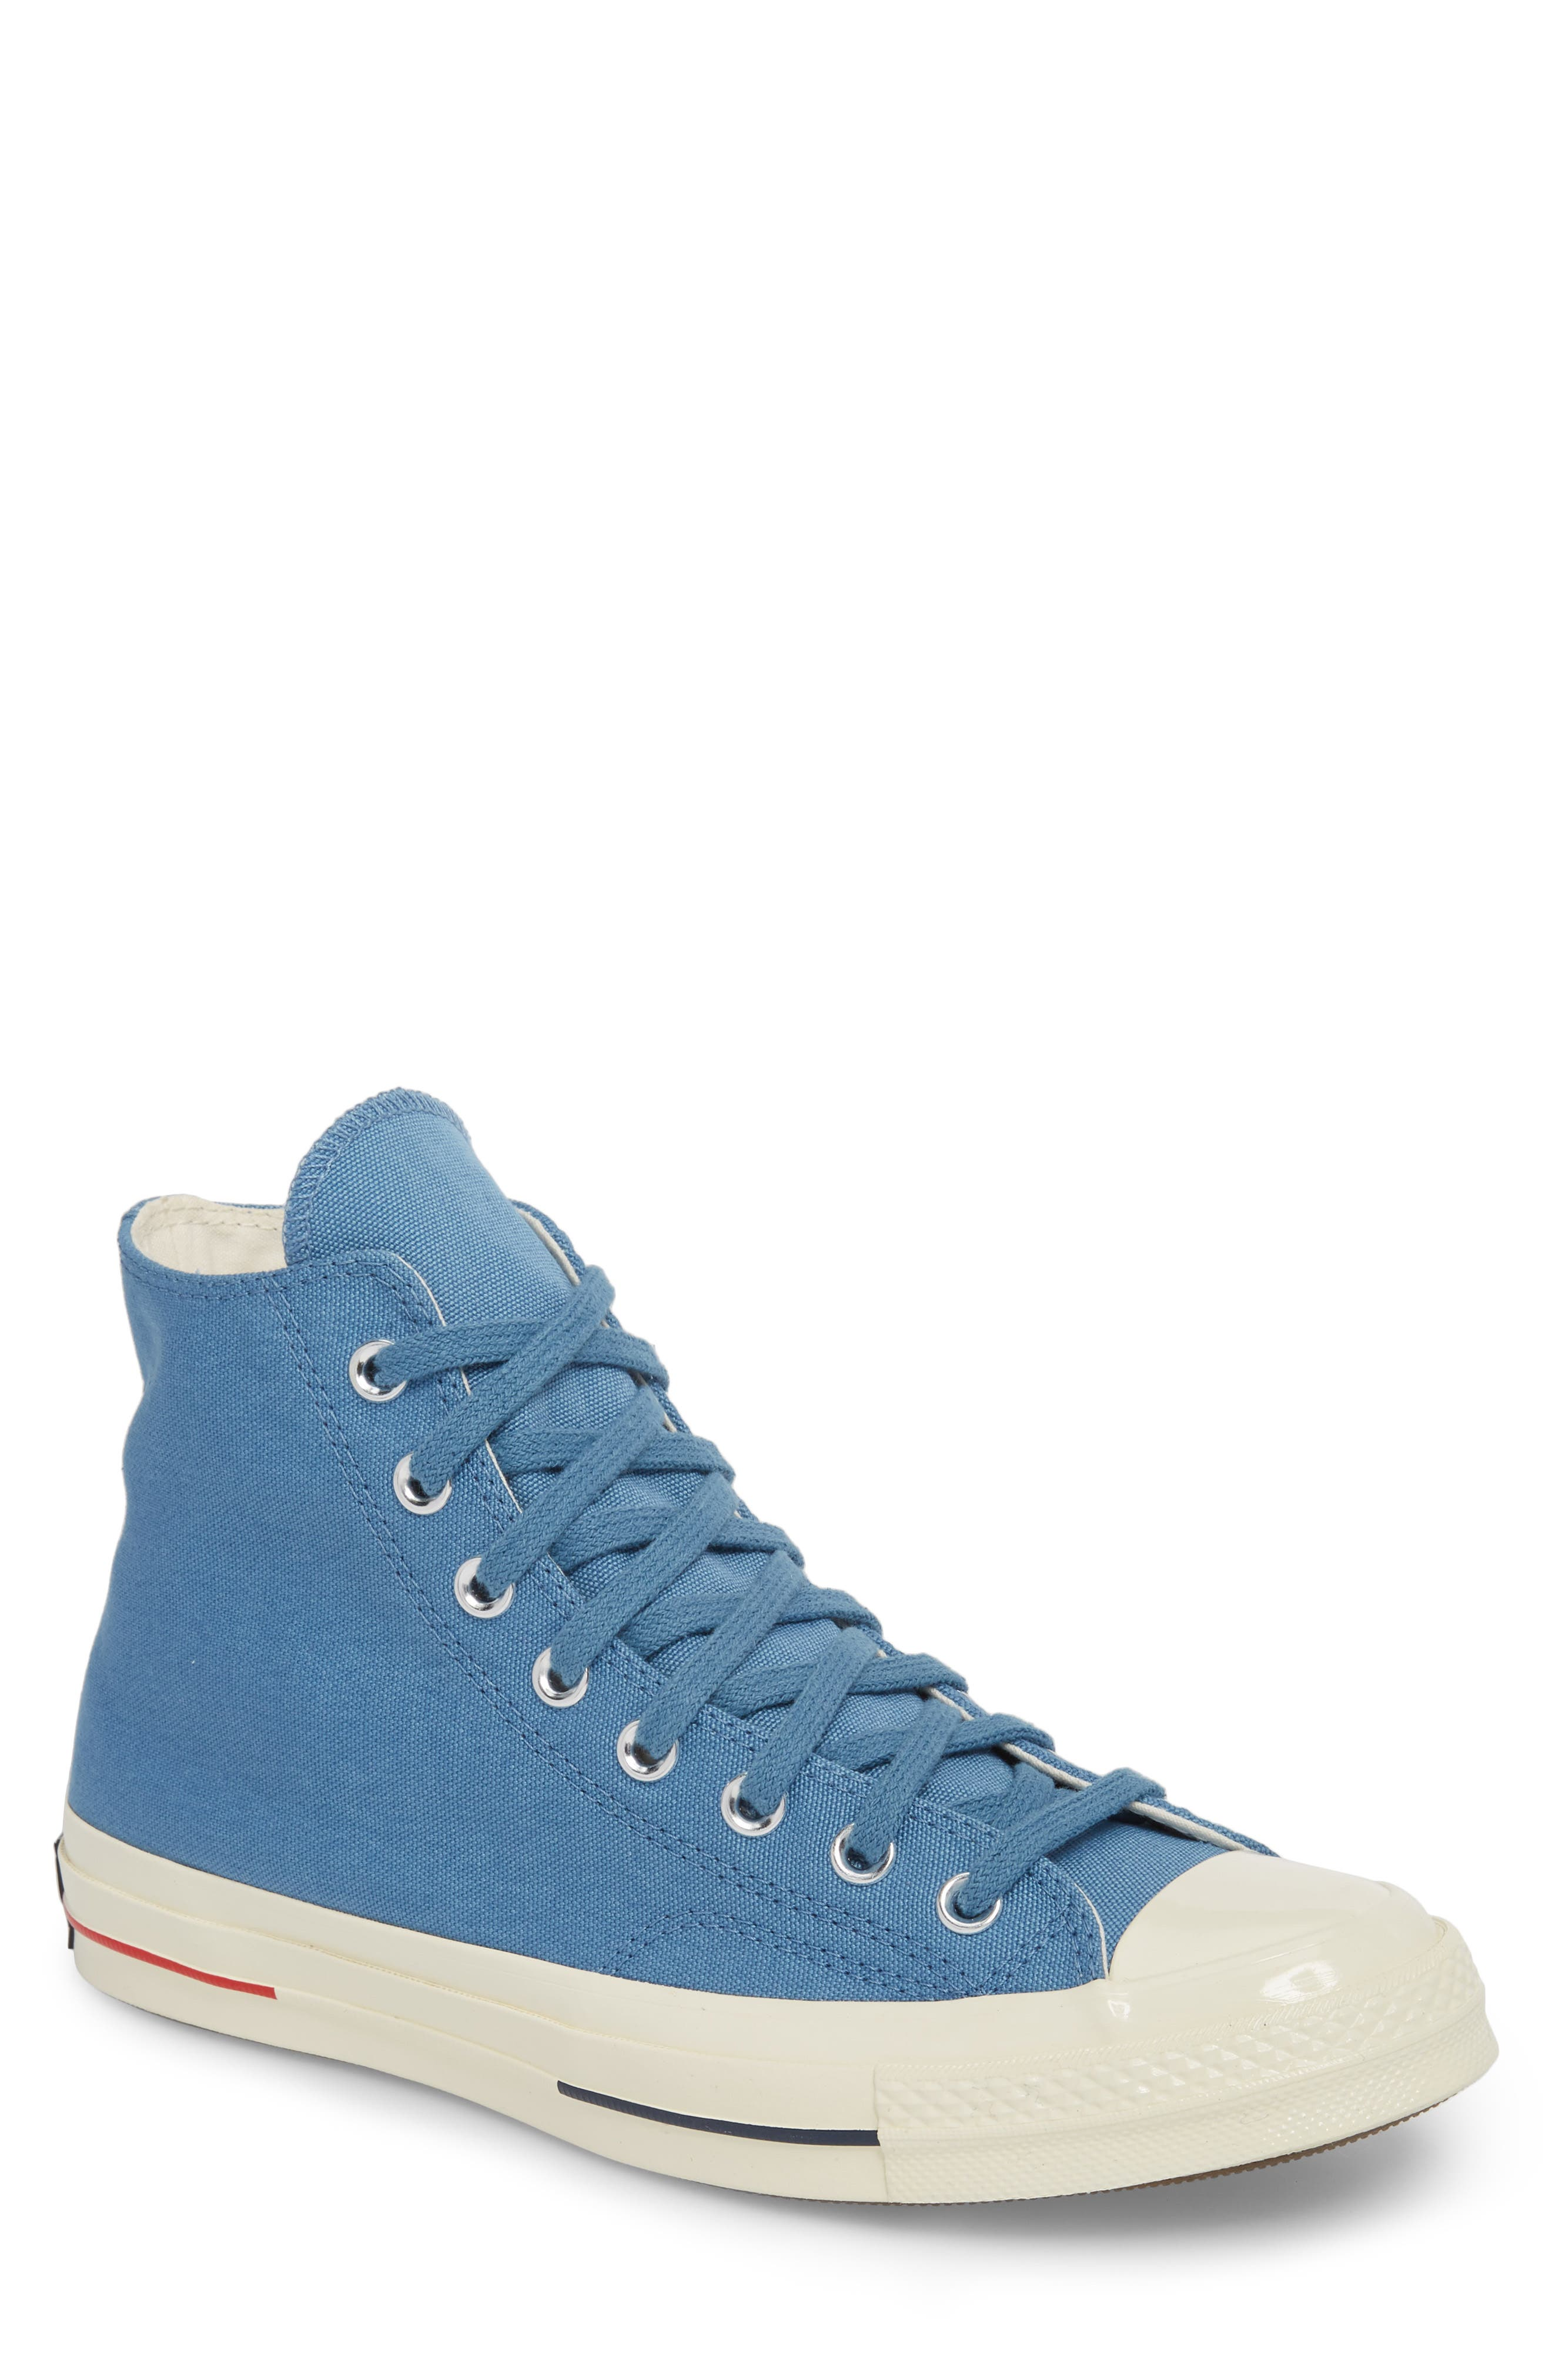 converse green high tops